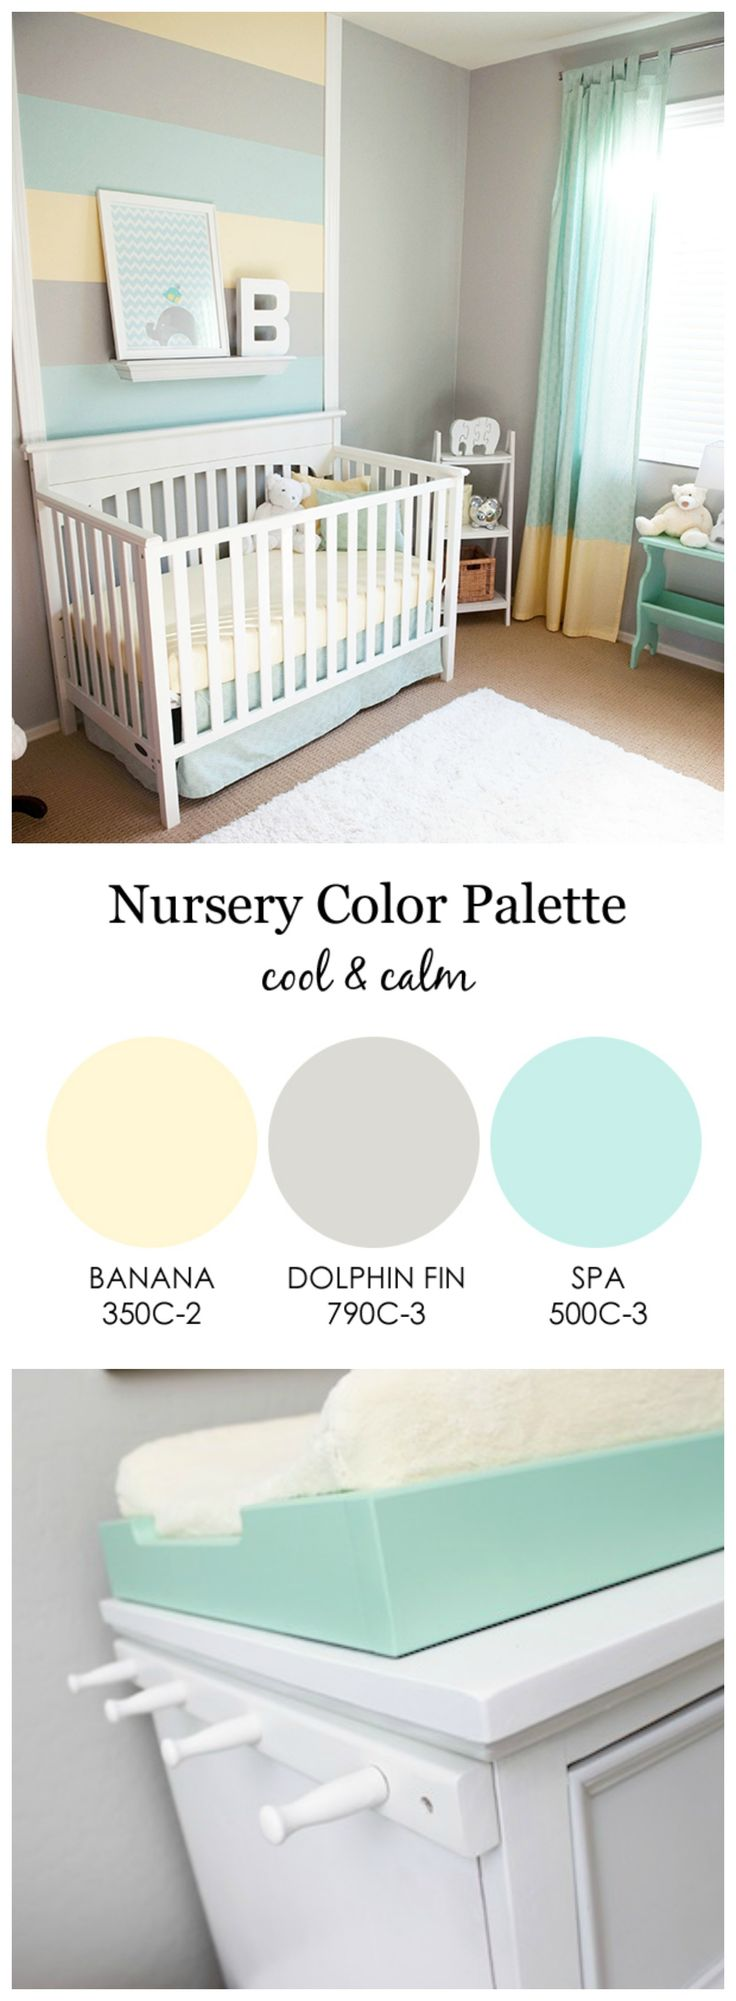 25 best ideas about nursery paint colors on pinterest for Show me the color green